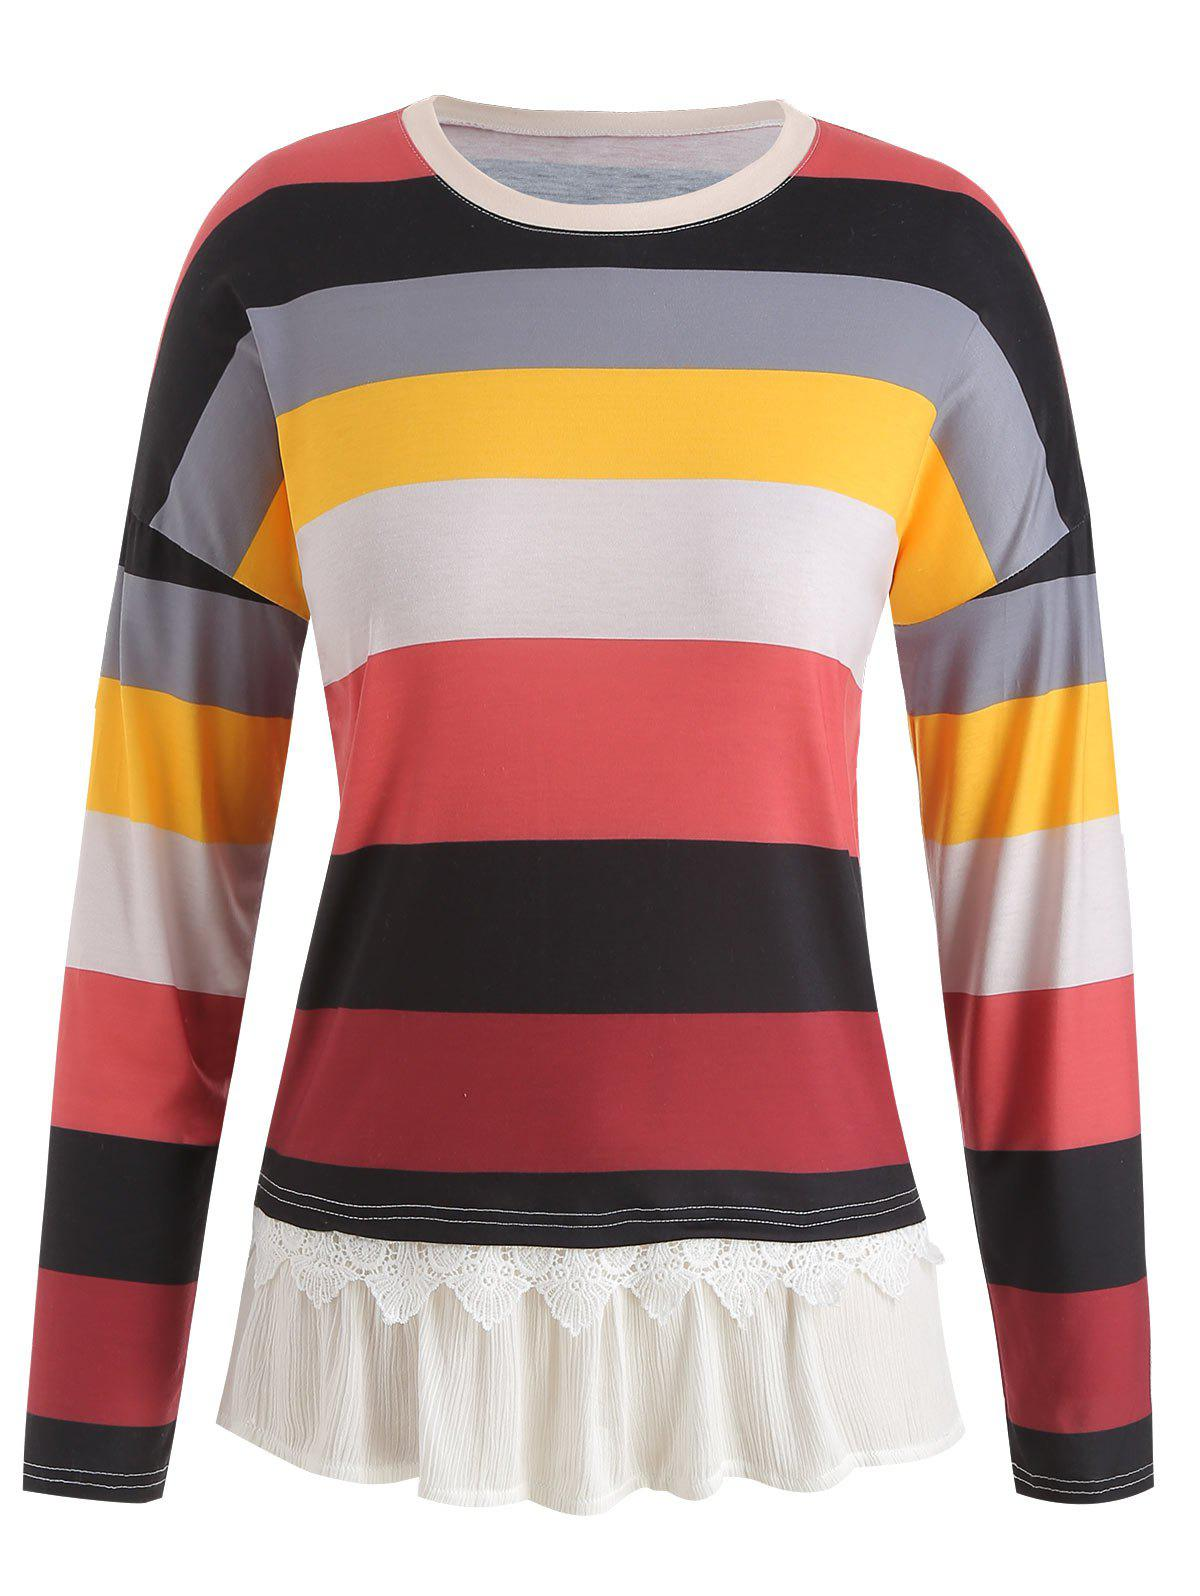 Online Color Block Striped Plus Size Tunic Tee